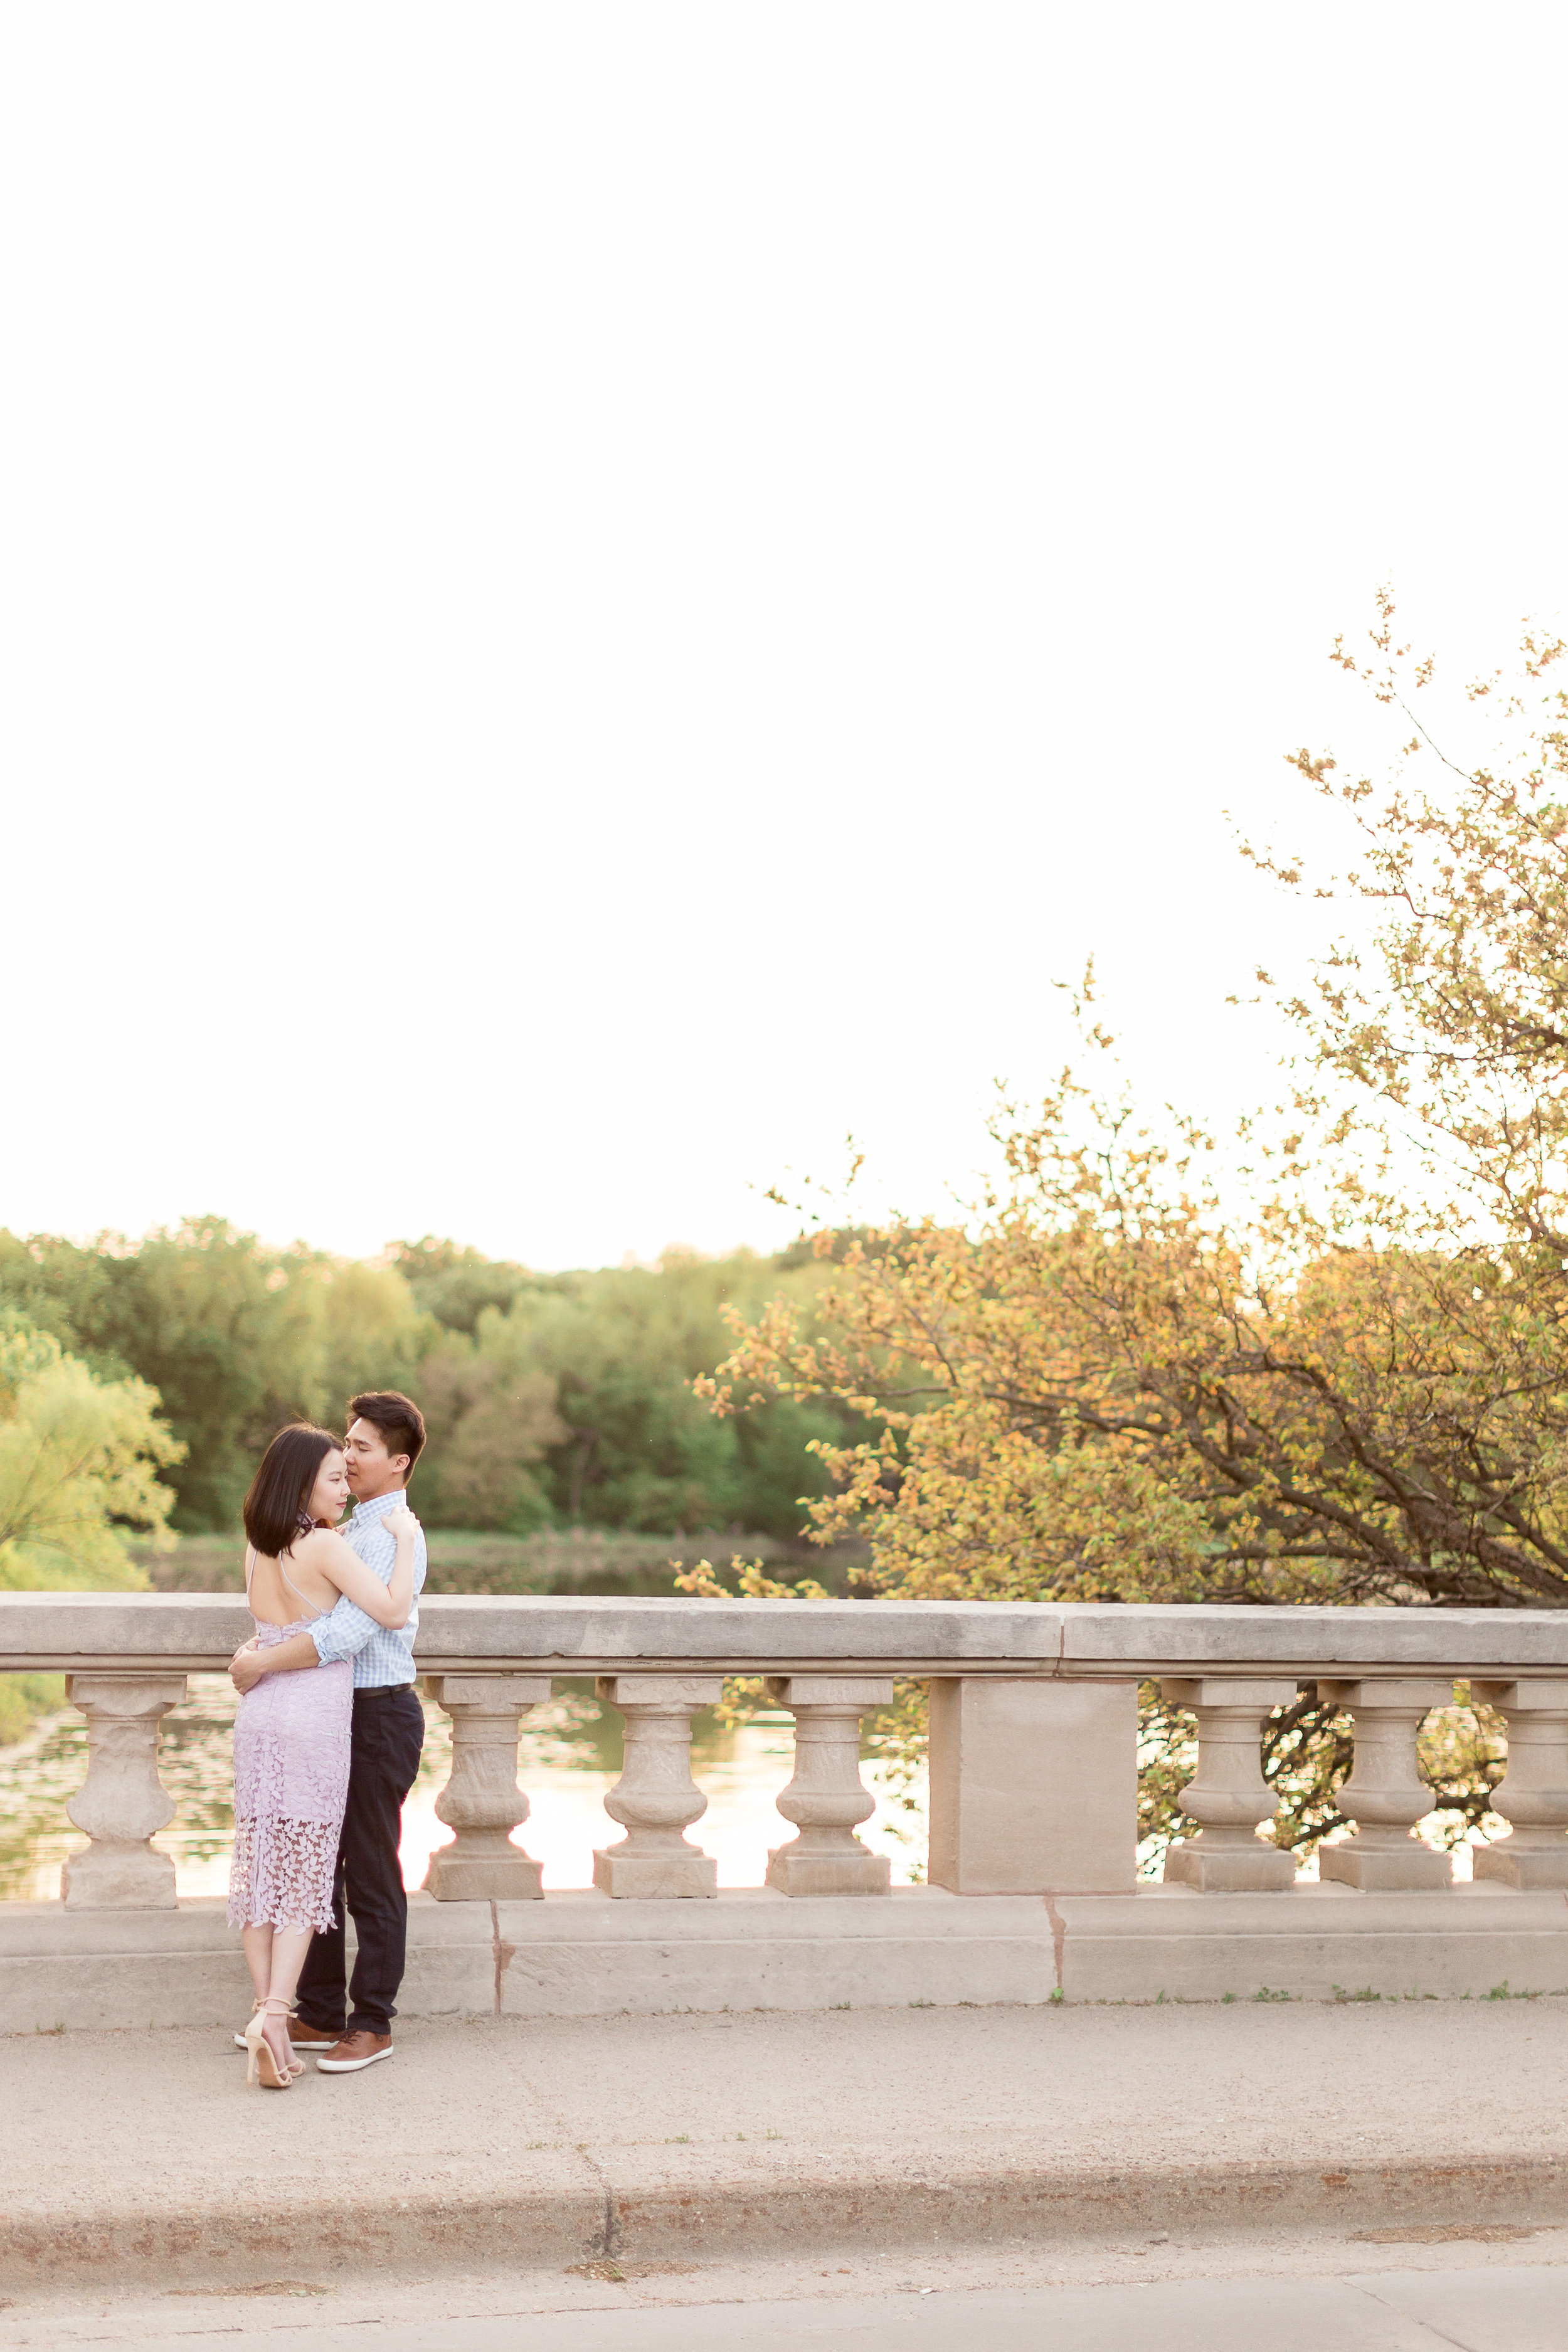 Abigail Berge Photography-engagement-99.jpg